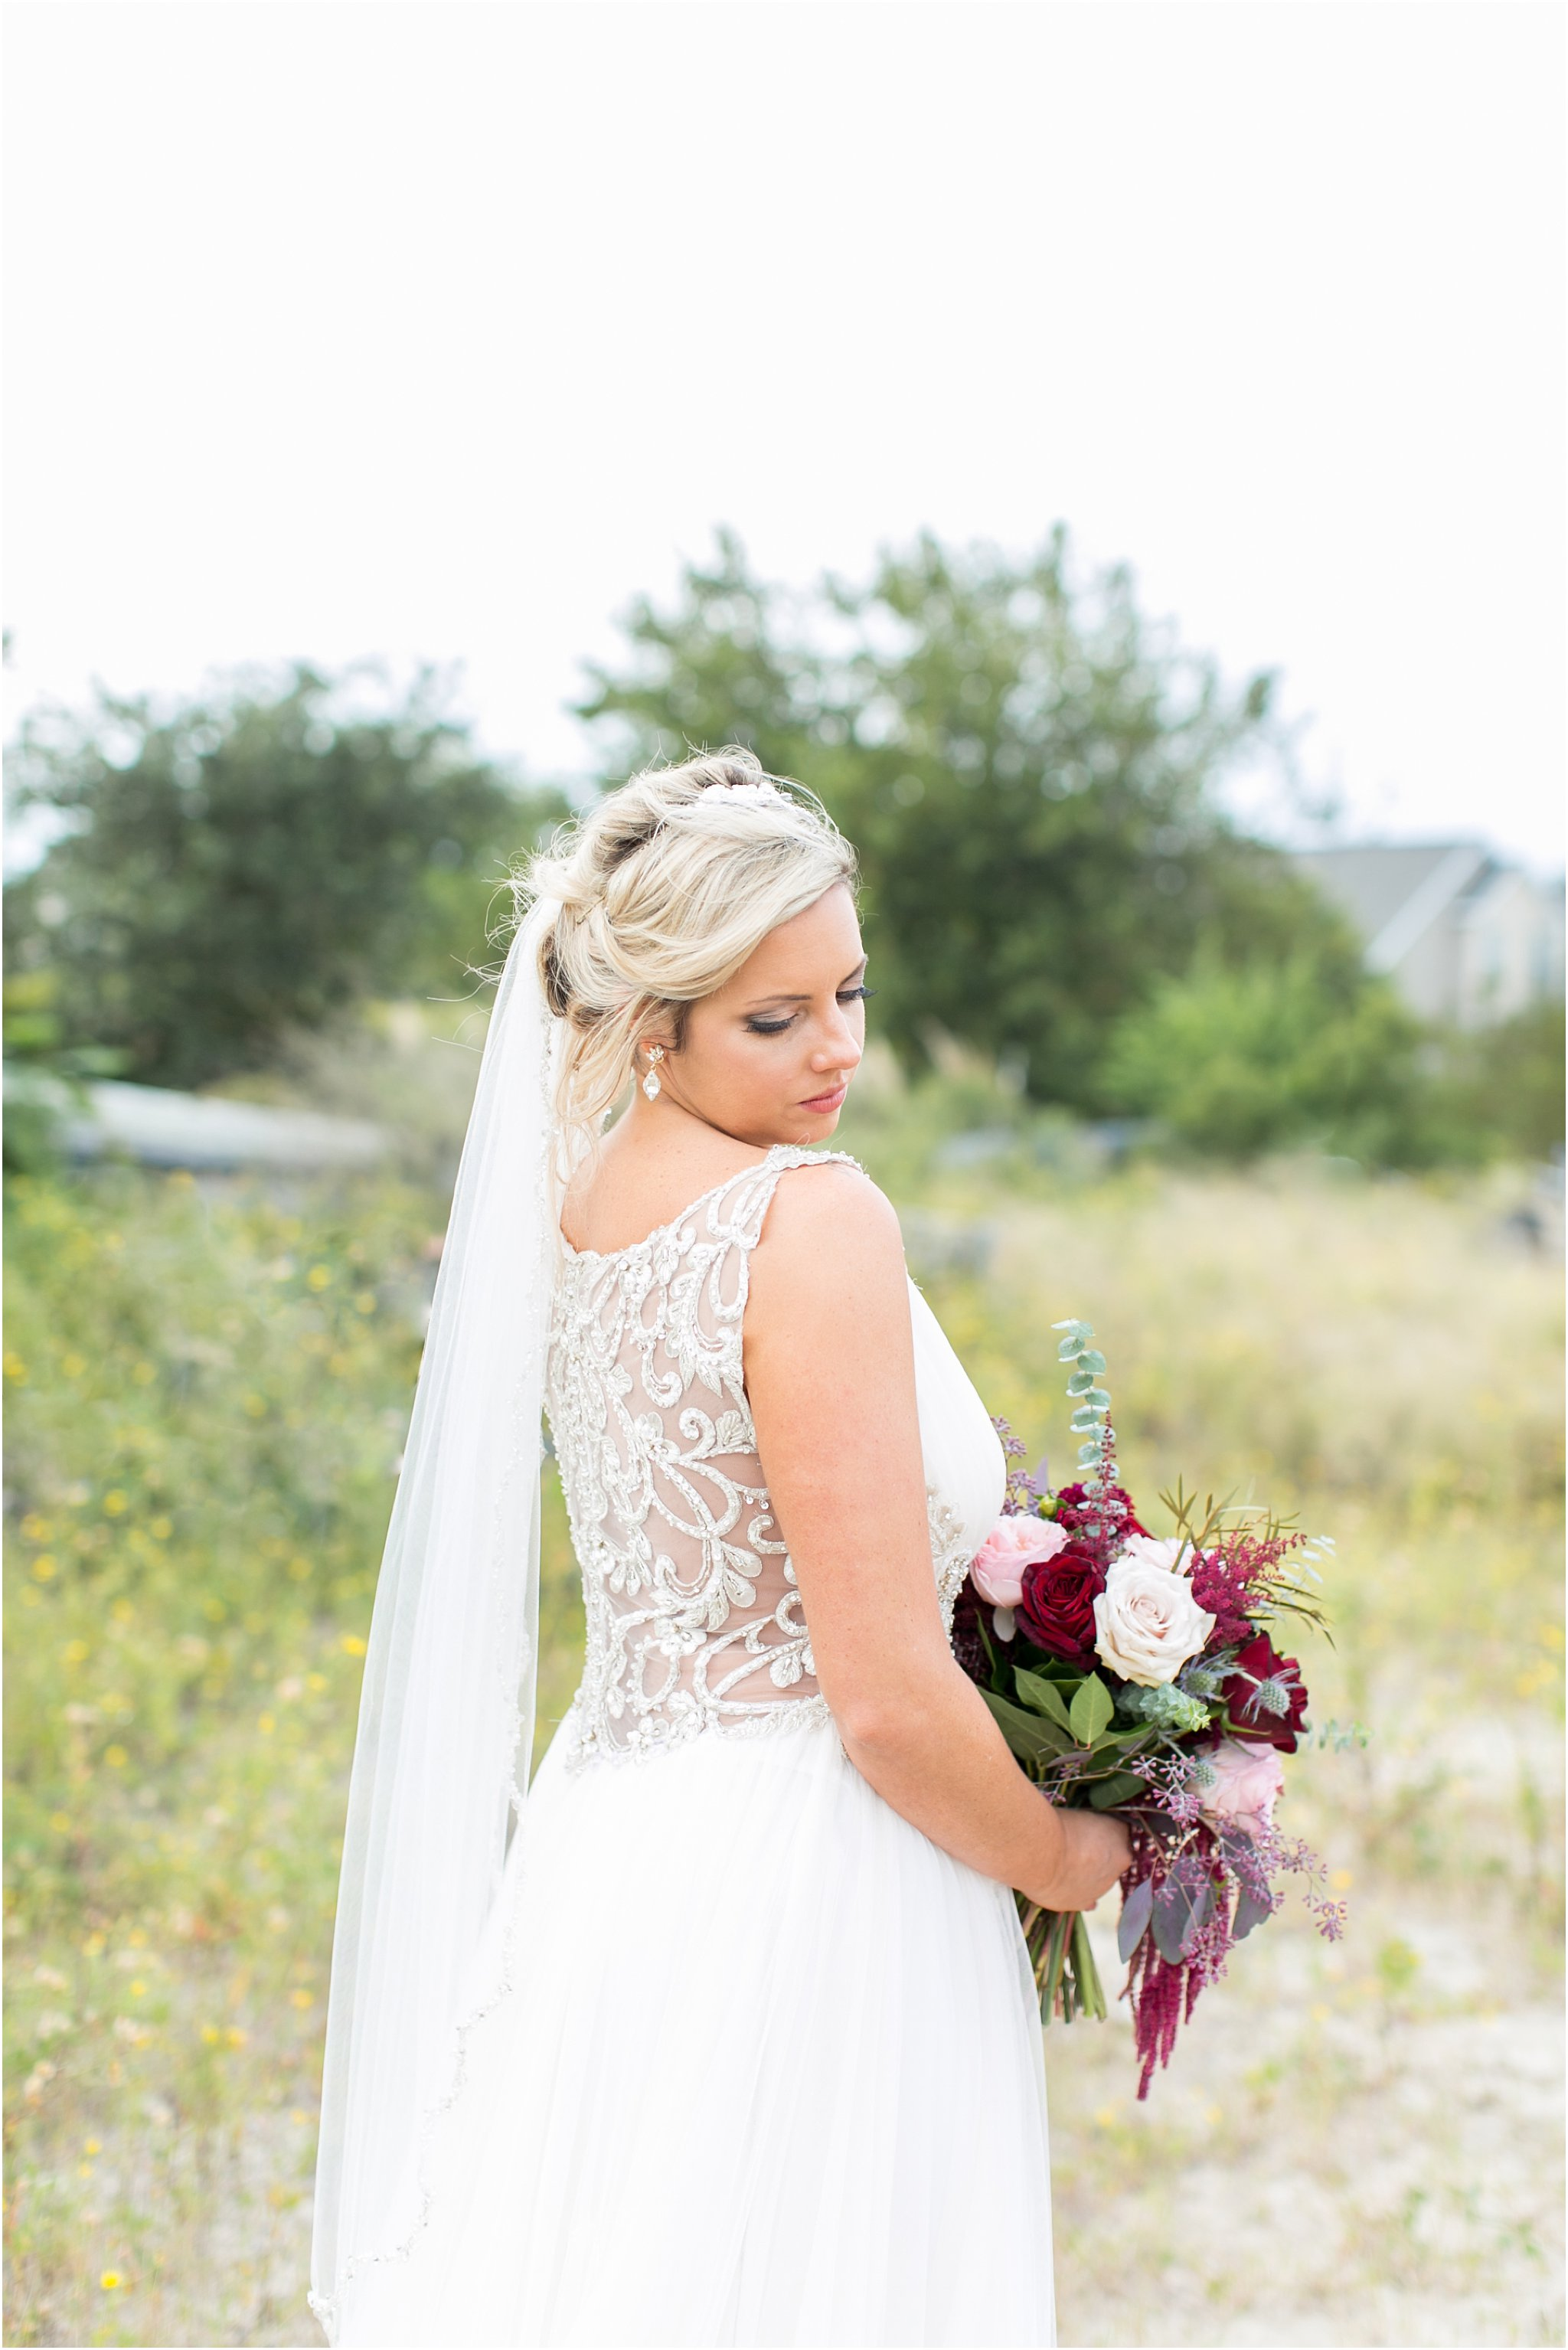 jessica_ryan_photography_virginia_wedding_photographer_candid_authentic_hampton_roads_wedding_photography_marina_shores_yacht_club_first_landing_state_park_woodland_theme_garden_3345